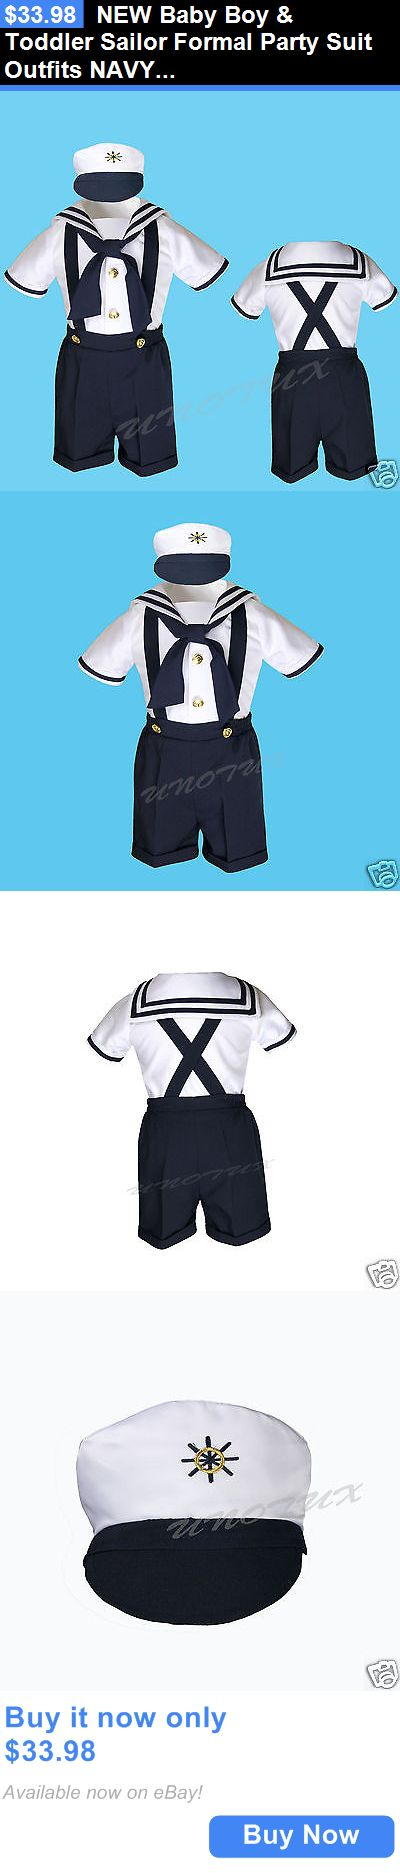 Kids Costumes: New Baby Boy And Toddler Sailor Formal Party Suit Outfits Navy Sz: S,M,L 2T 3T 4T BUY IT NOW ONLY: $33.98